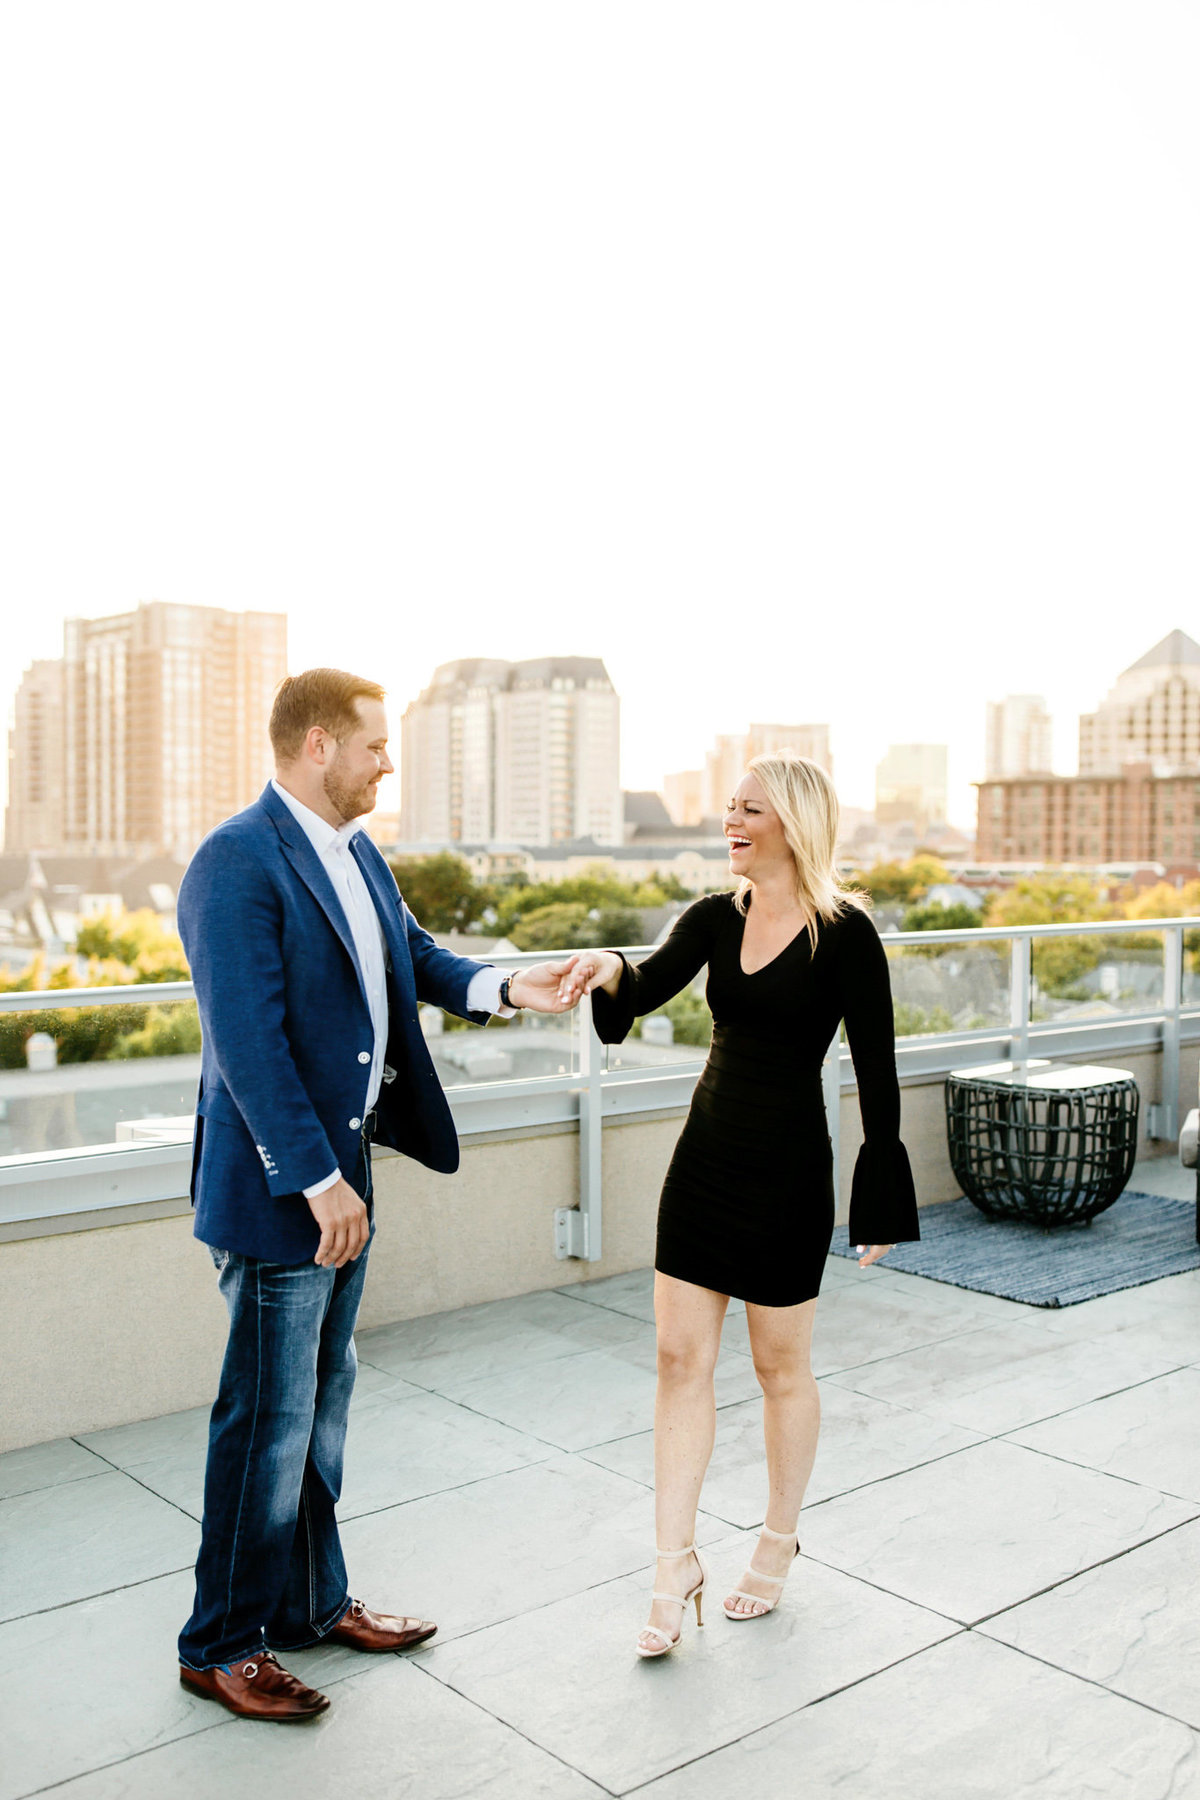 Eric & Megan - Downtown Dallas Rooftop Proposal & Engagement Session-90